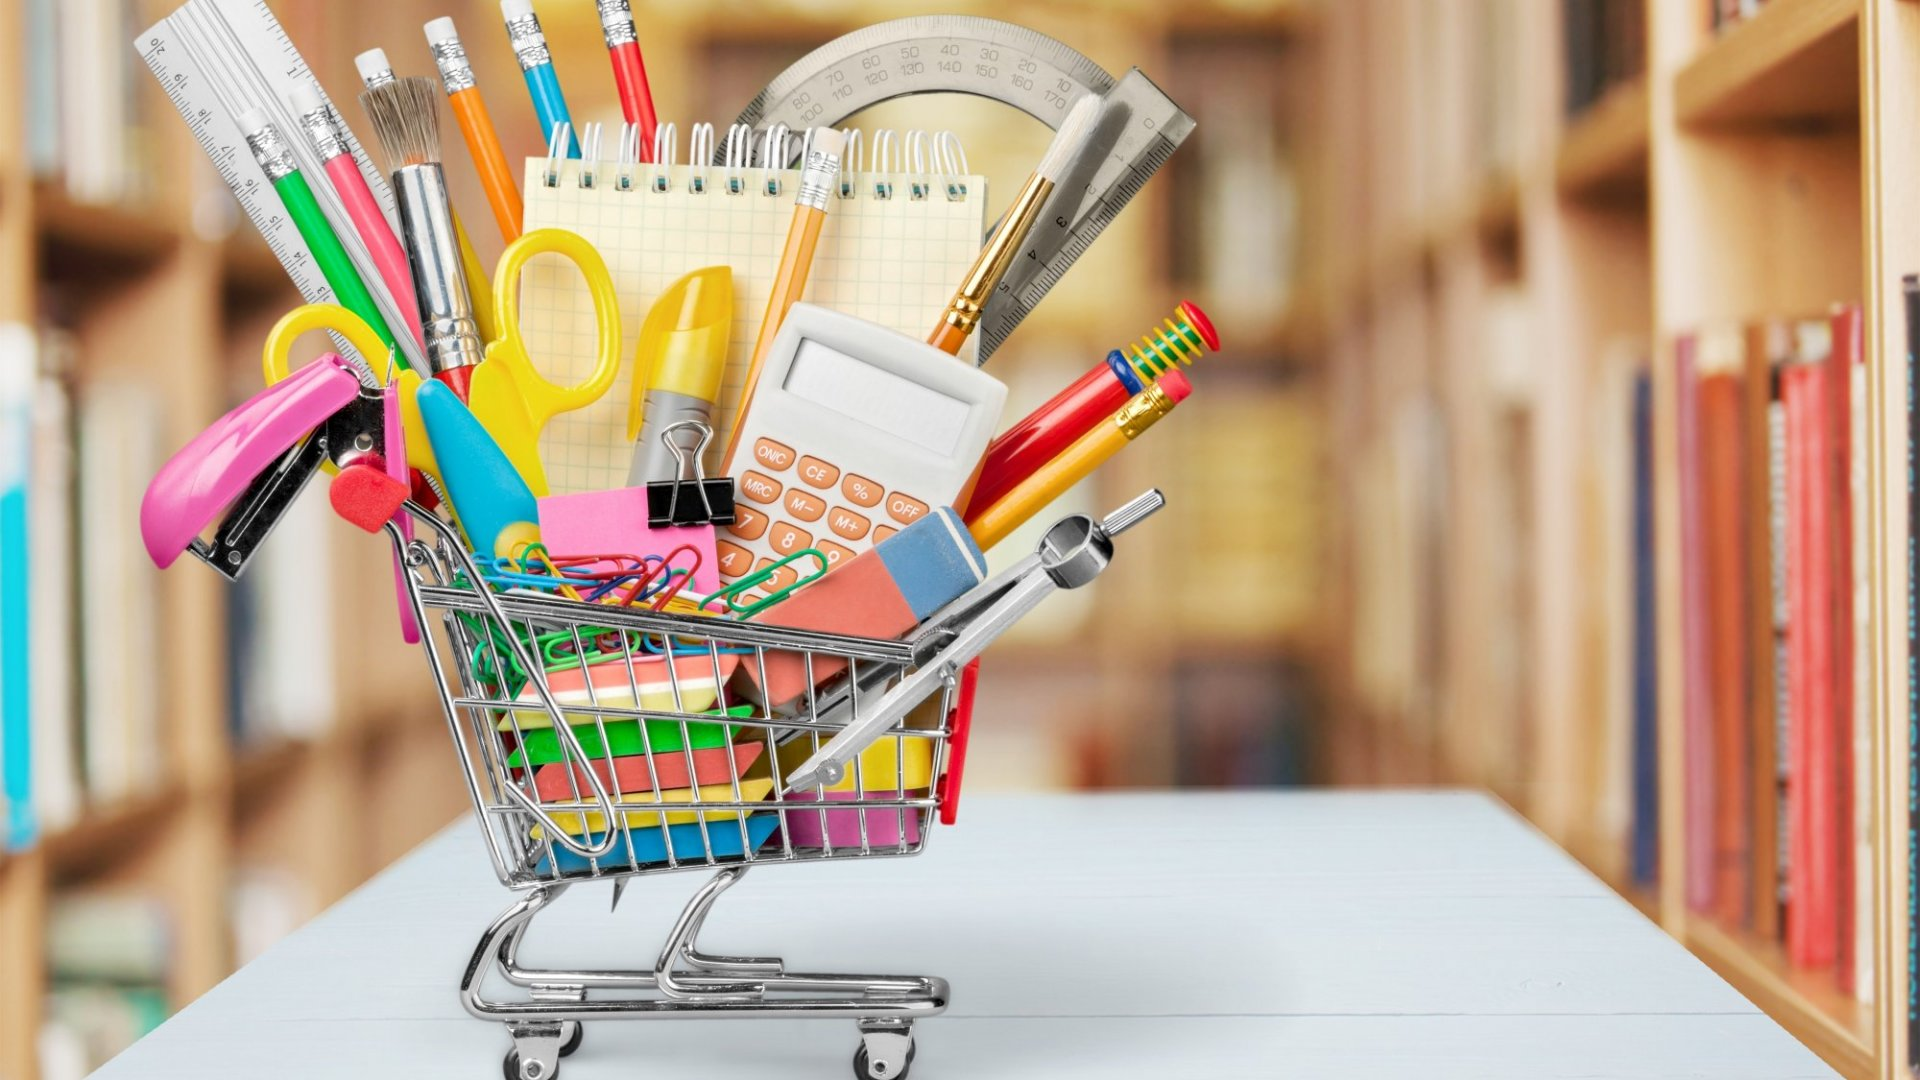 NRF Survey Suggests Near Record Back-to-School Spending in 2018